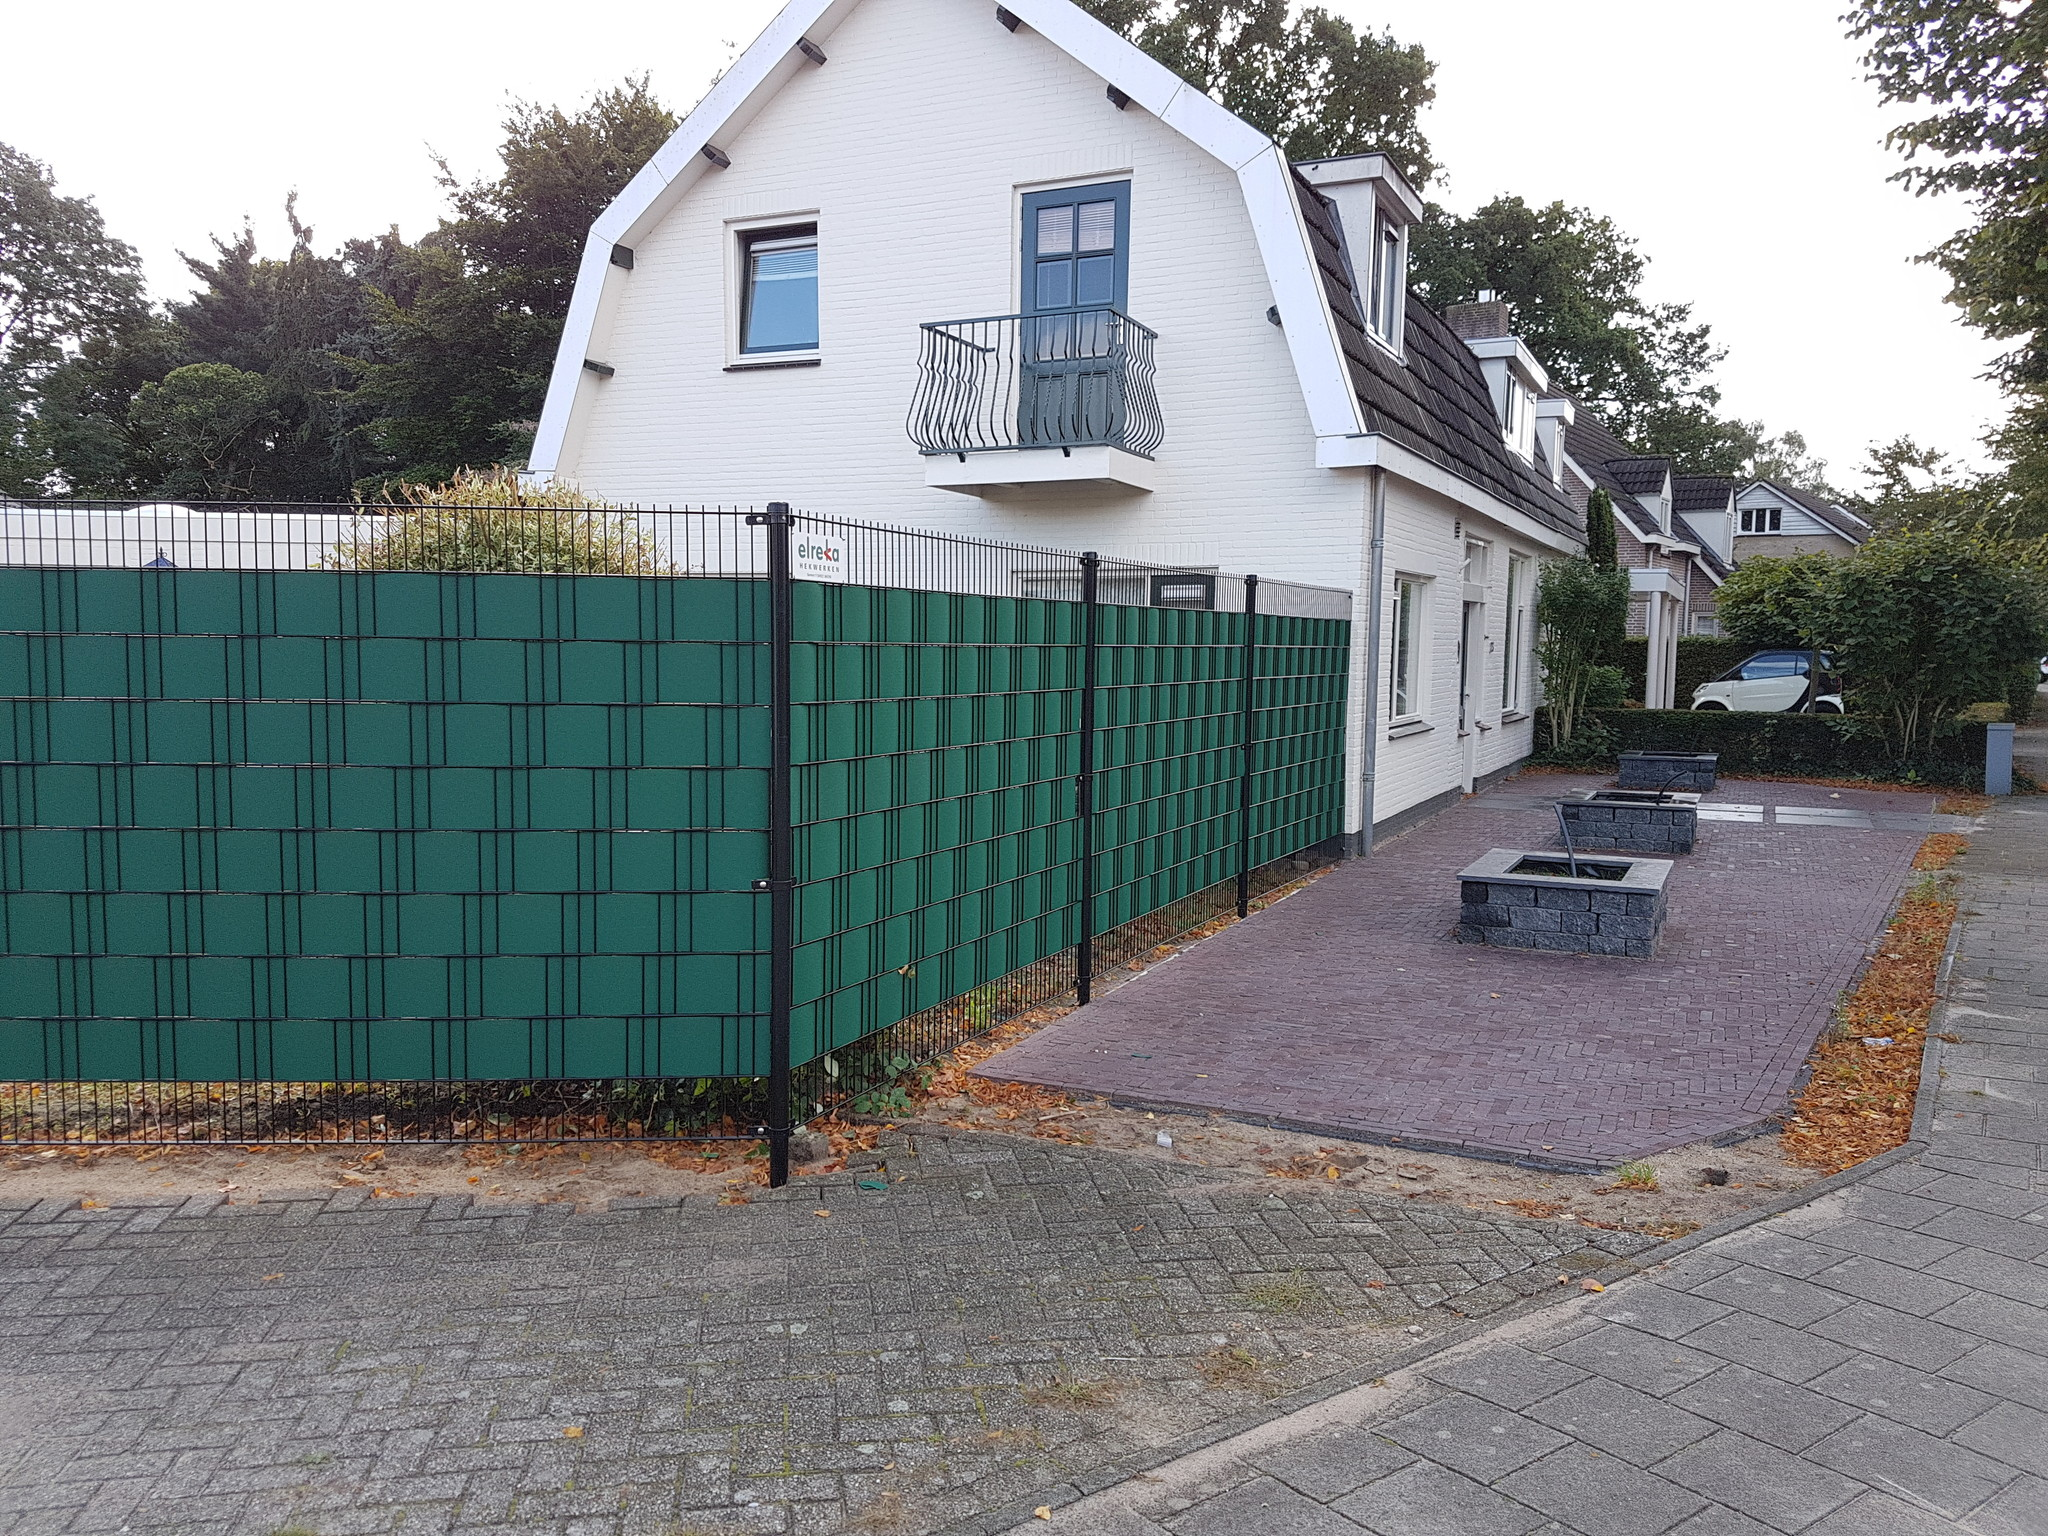 Gipea Easy To Fix Optimal Visibility Protection For Gate & Fence Gipea Easy to fix (GATE) 115 cm + 20 montageklemmen